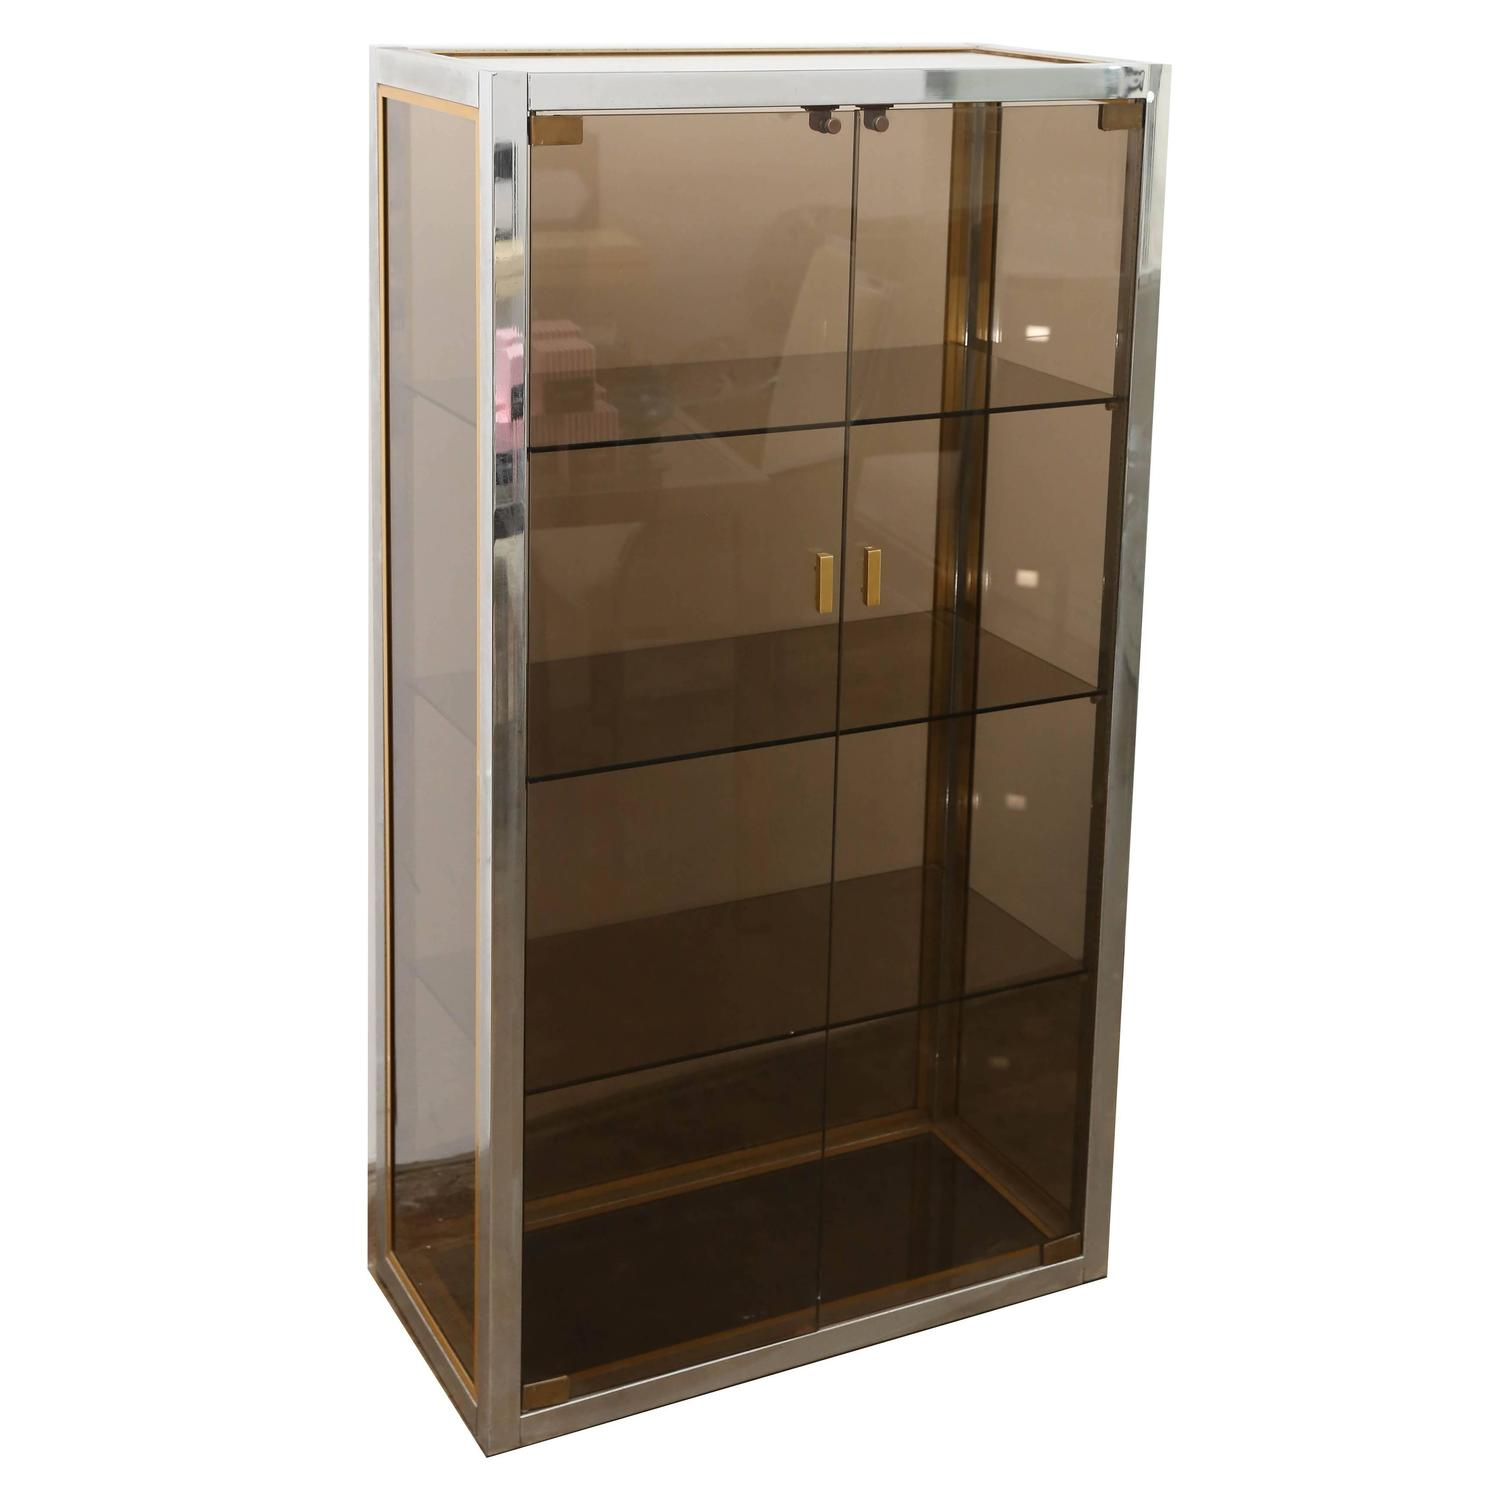 Blickfang Vitrine Beste Wahl Mid-century Modern Italian Chrome, Brass And Smoked